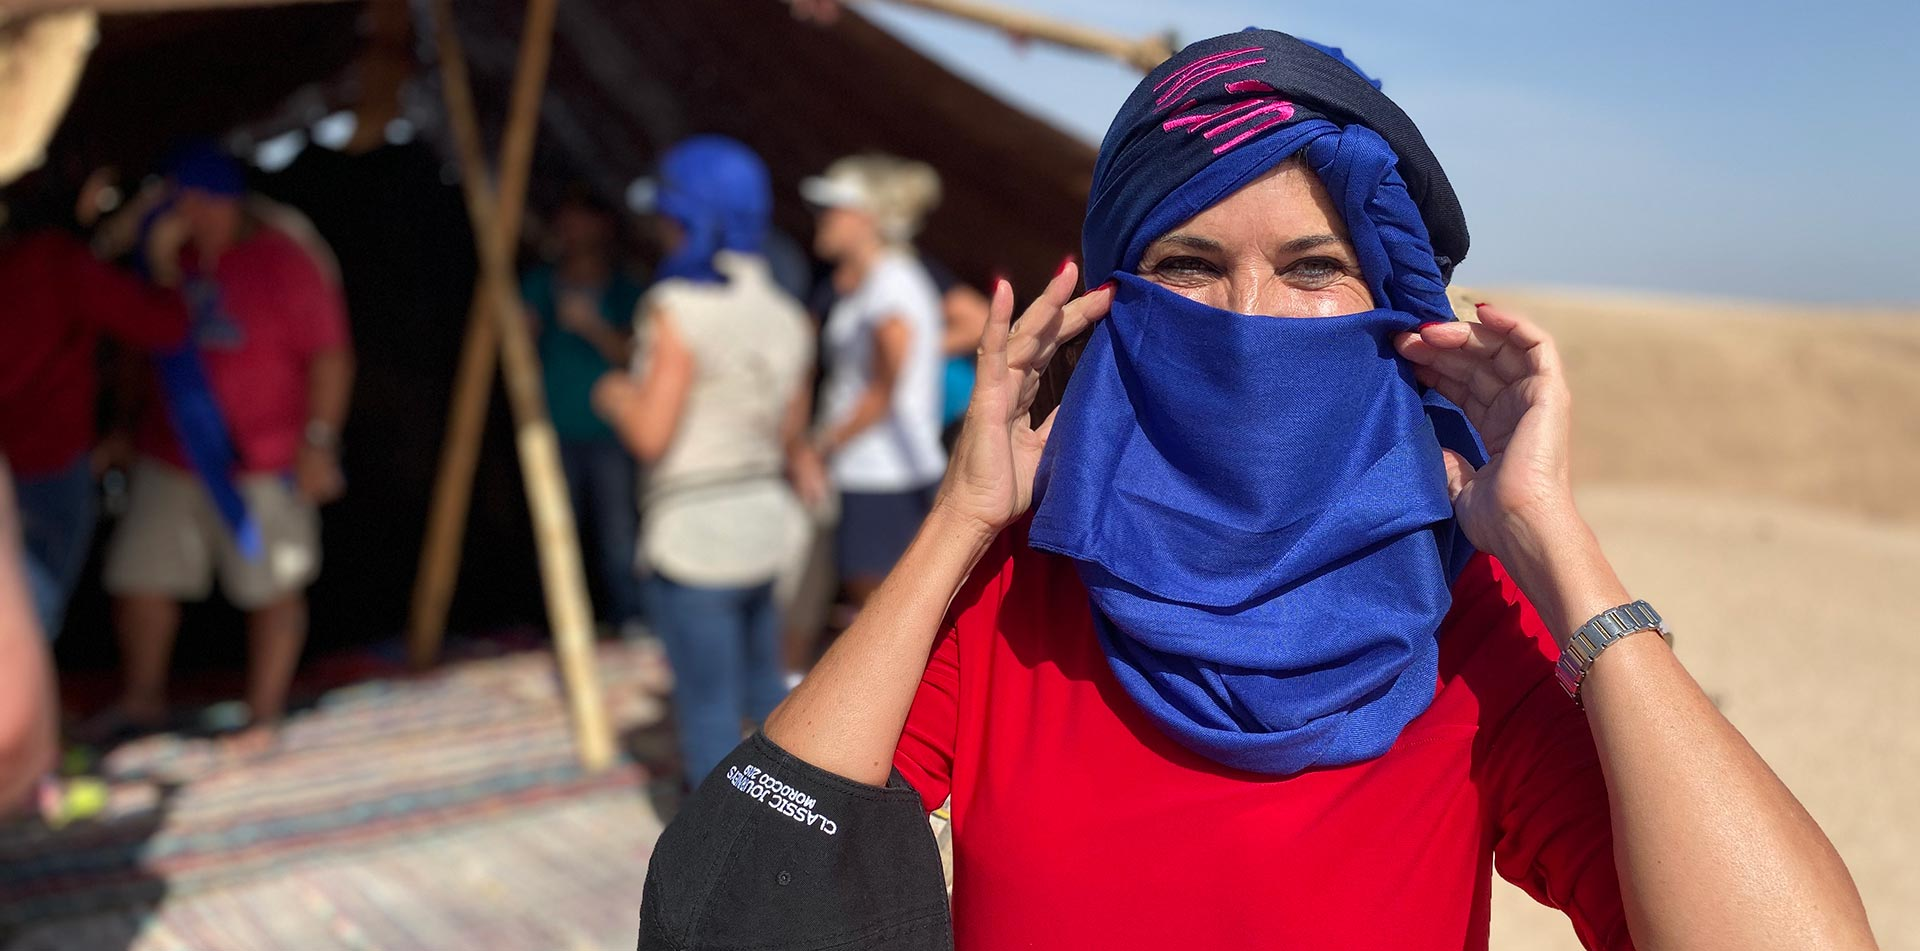 Africa Morocco Agafay Village happy woman wearing blue face covering and traditional headscarf - luxury vacation destinations